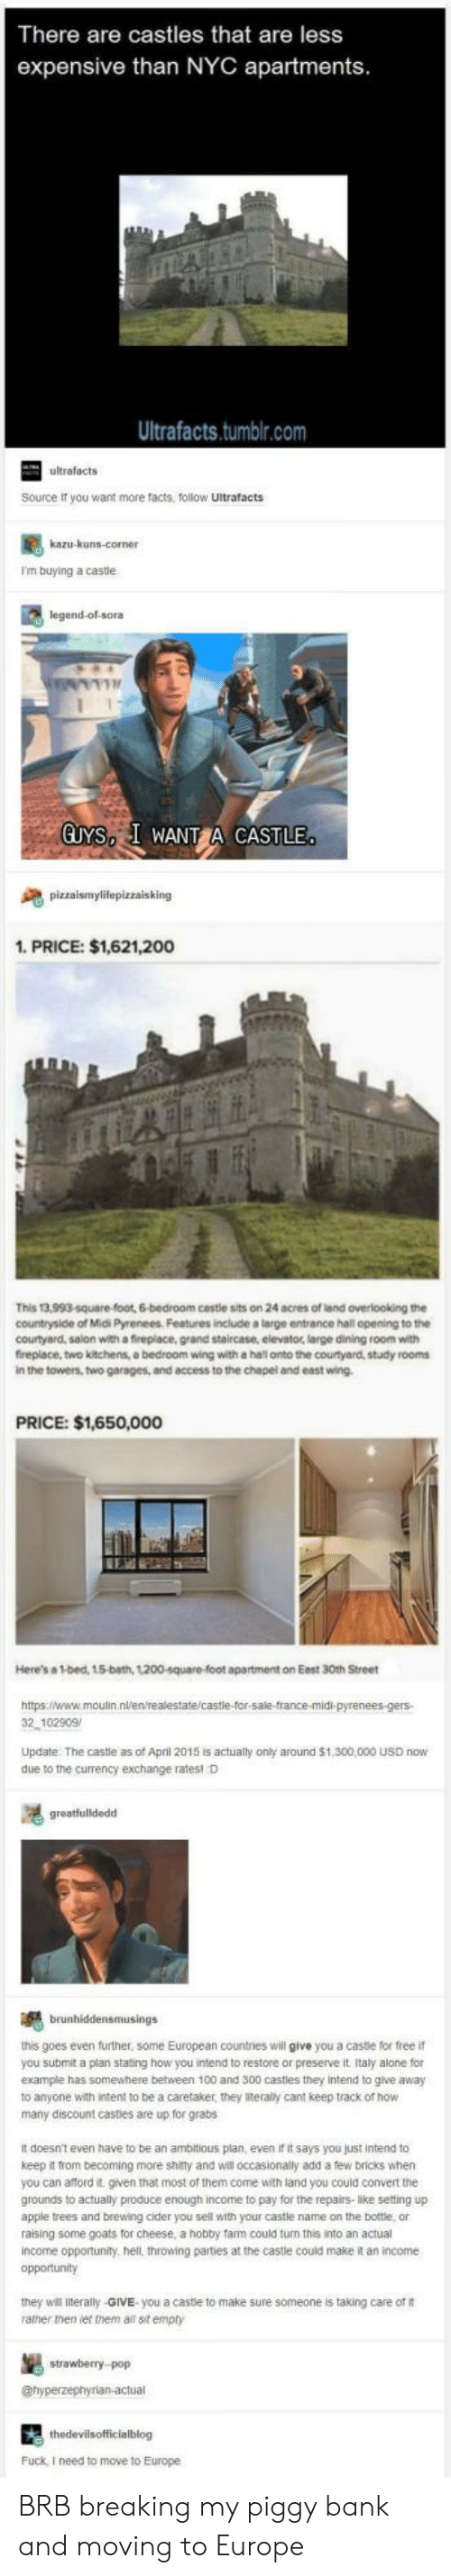 cider: There are castles that are less  expensive than NYC apartments  Ultrafacts.tumblr.com  ultrafacts  Source it you want more facts, follow Ultrafacts  I'm buying a castle  legend-ol-sora  GUYS I WANT CASTLE  1. PRICE: $1,621,200  This 13,993-square-foot, 6-bedroom cestle sits on 24 acres of land overlooking the  countryside of Midi Pyrenees. Features include a large entrance hall opening to the  courtyard, salon with a fireplace, grand staircase, elevator, large dining room with  fireplace, two kitchens, a bedroom wing with a hal onto the courtyard, study rooms  in the towers, two garages, and access to the chapel and east wing  PRICE: $1,650,000  Here's a 1-bed, 15-bath, 1200-square-foot apartment on Eest 30th Street  2 102909  Update The castle as of April 2015 is actualy only around $1,300,000 USD now  due to the currency exchange ratesl D  this goes even further, some European countries will give you a castle for free if  you submit a plan stating how you intend to restore or preserve it Italy alone for  example has somewhere between 100 and 300 castles they intend to give away  to anyone with intent to be a caretaker, they iteraly cant keep track of how  many discount casties are up for grabs  It doesn't even have to be an ambitious plan, even it it says you just intend to  keep it from becoming more shitty and will occasionally add a few bricks when  you can aford it. given that most of them come with land you could convert the  grounds to actually produce enough income to pay for the repairs-like setting up  apple trees and brewing cider you sell with your castle name on the bottle or  raising some goats for cheese, a hobby farm could turn this into an actual  income opportunity. hell, throwing parties at the caste could make it an income  opportunity  they will literally-GIVE you a caste to make sure someone is taking care of  ramer men let them a sit empty  stowebery  Fuck, I need to move to Europe BRB breaking my piggy bank and moving to Europe